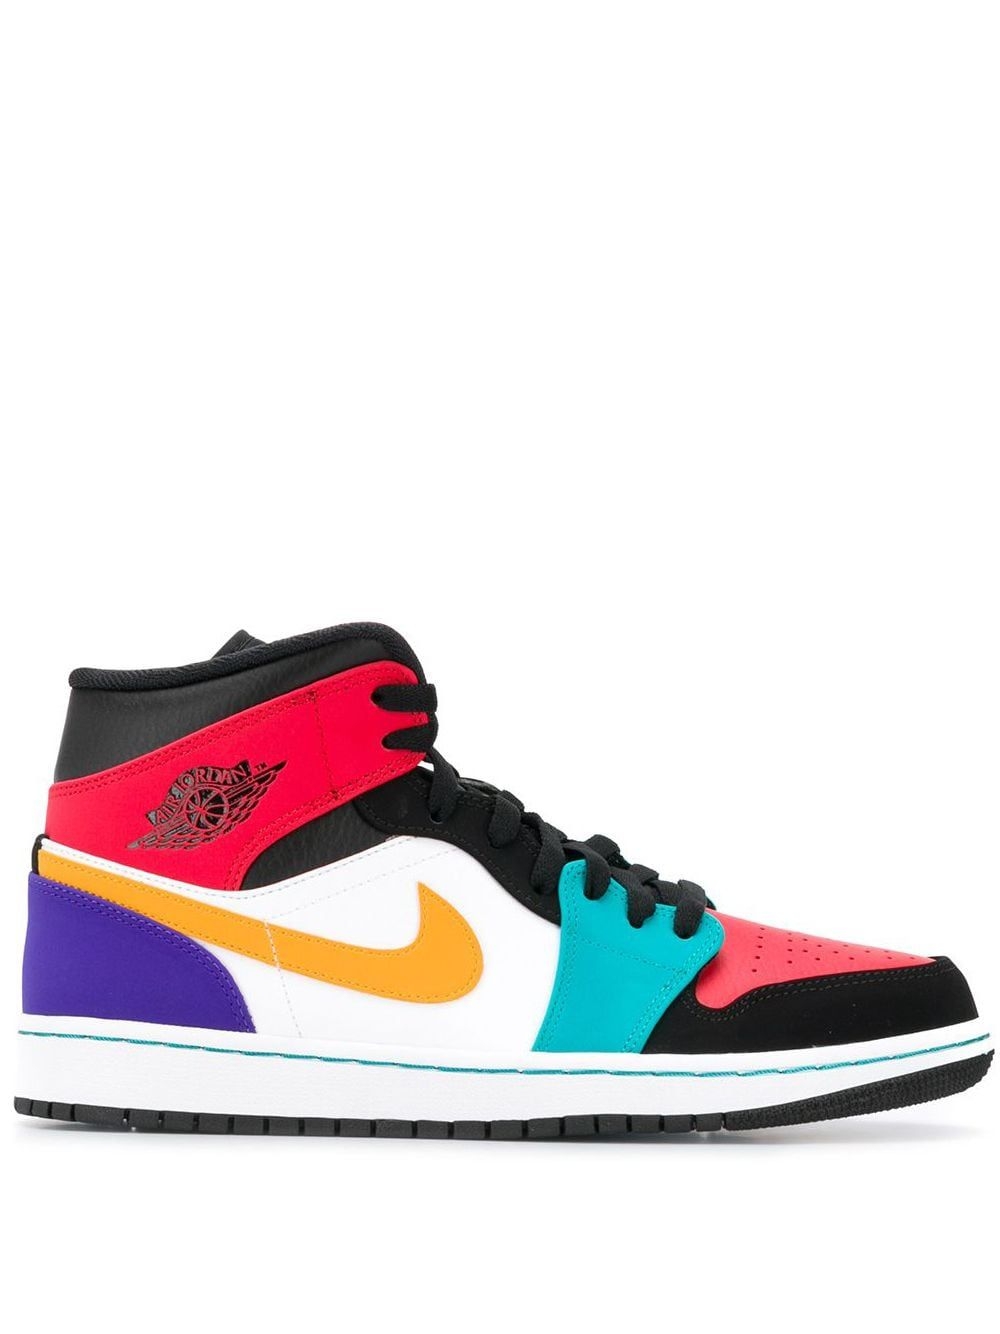 Jordan Air 1 Low Laker S Top 3 In Black Modesens In 2020 Air Jordans Jordan 1 Low Low Sneakers